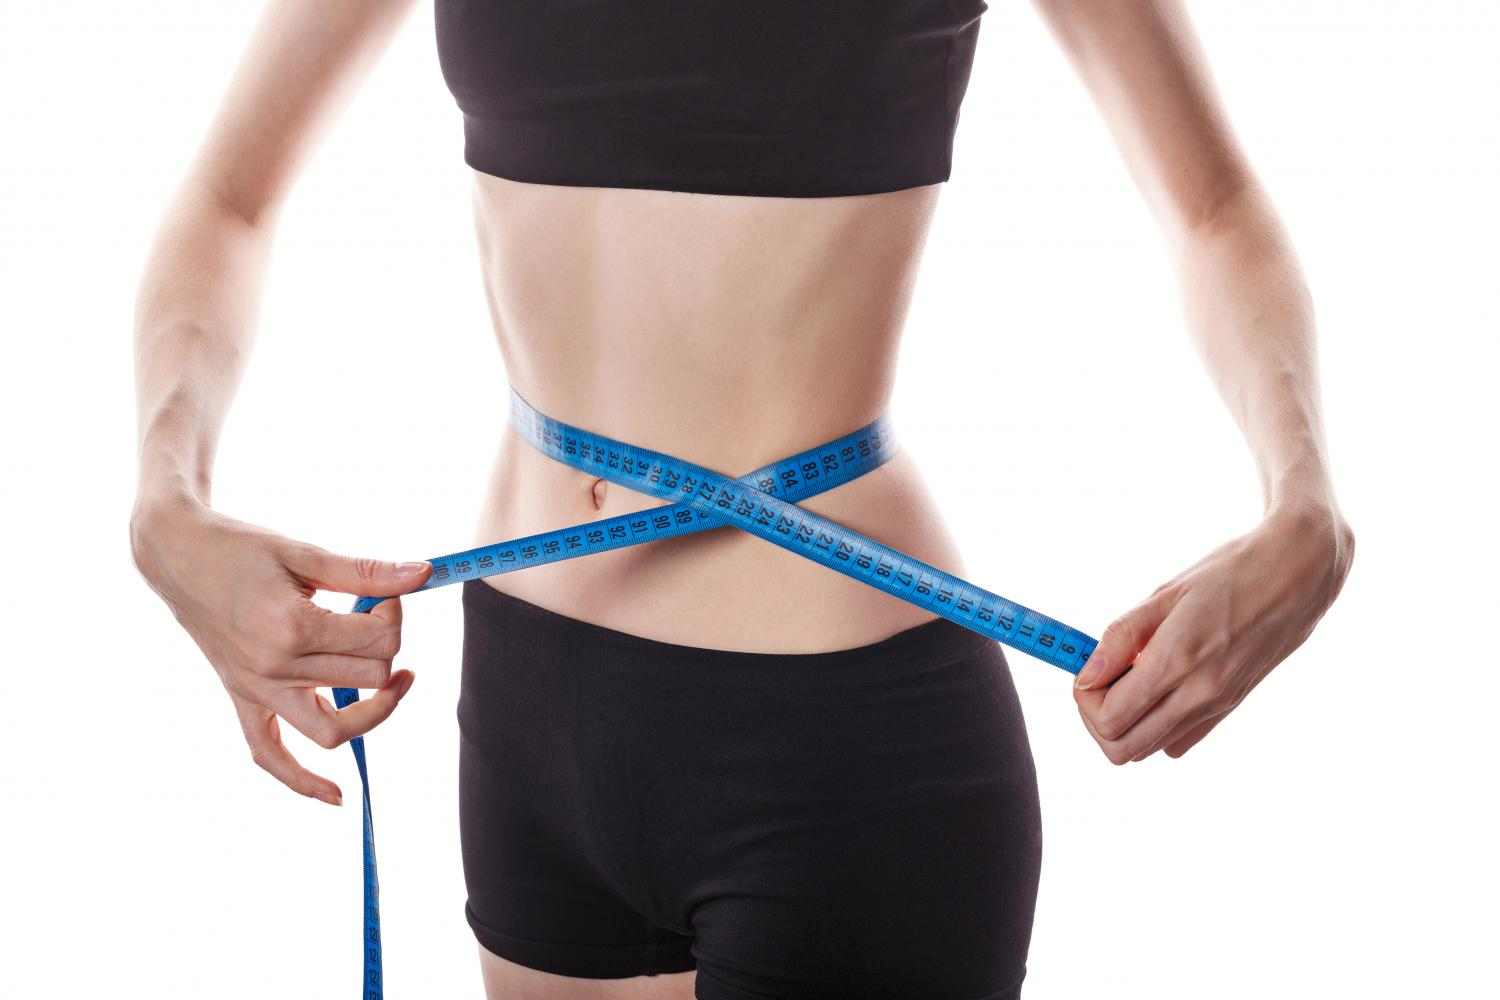 Anorexia nervosa has a genetic basis